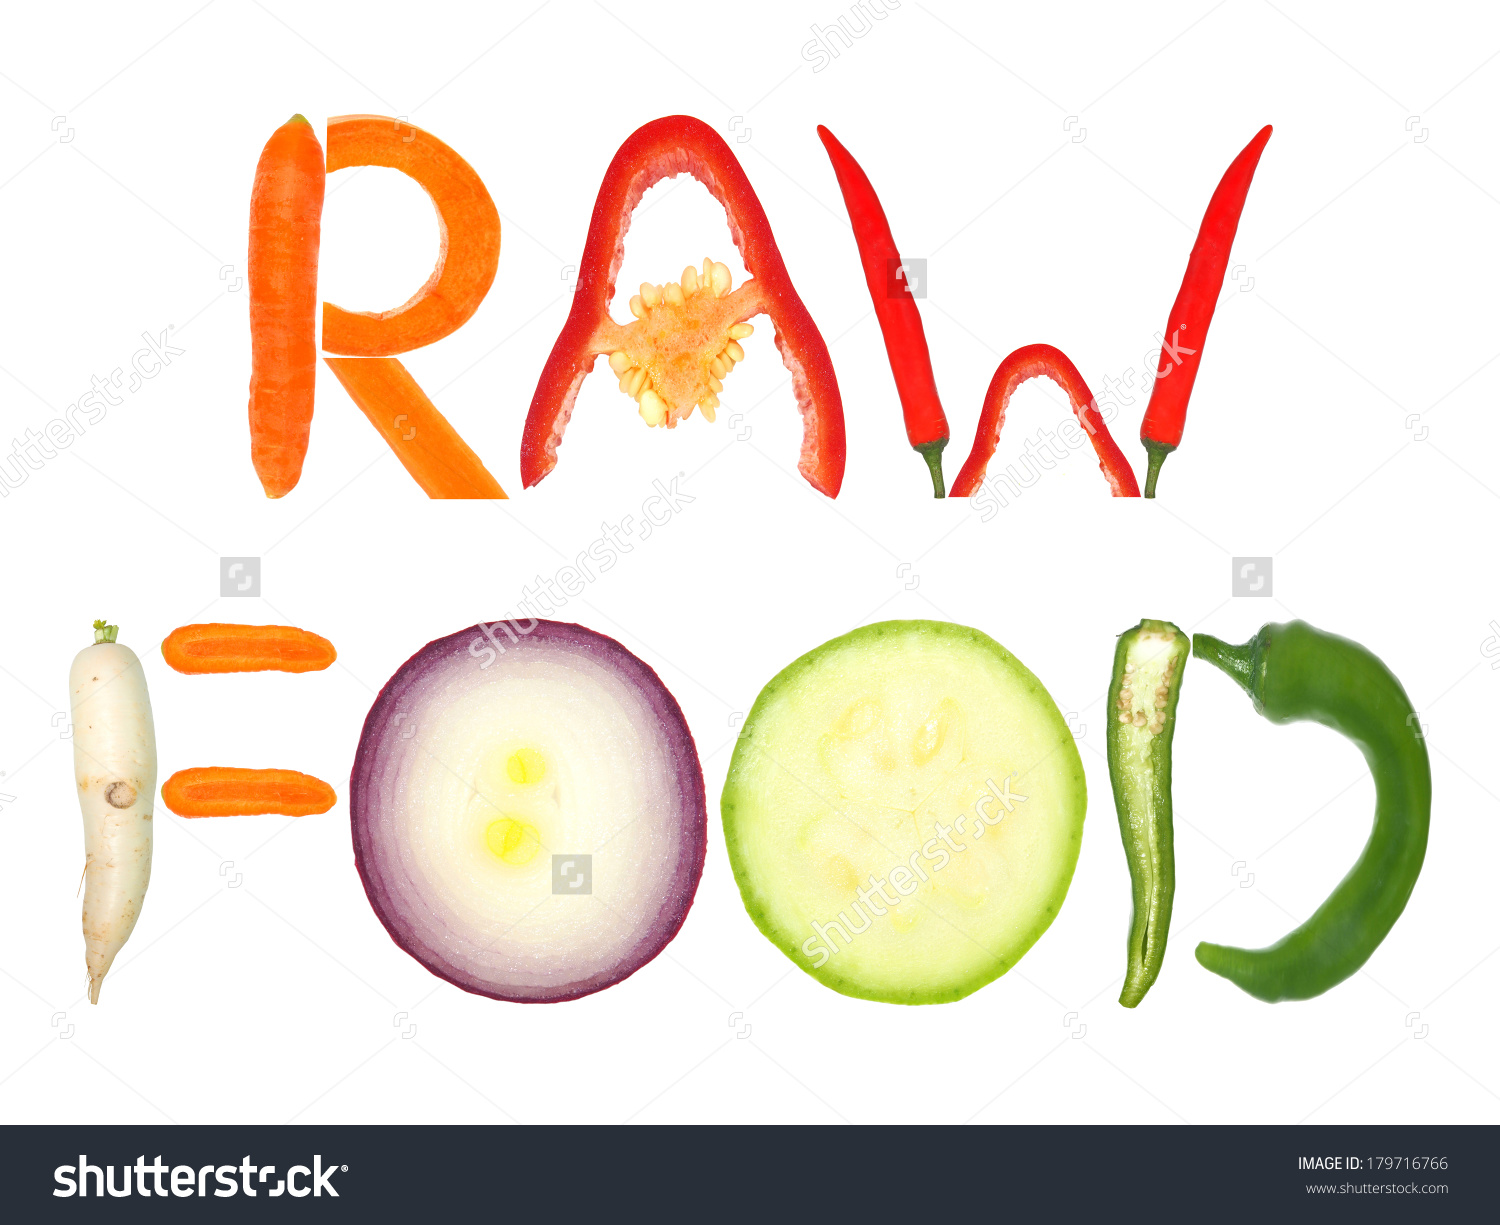 raw meat clipart - photo #17